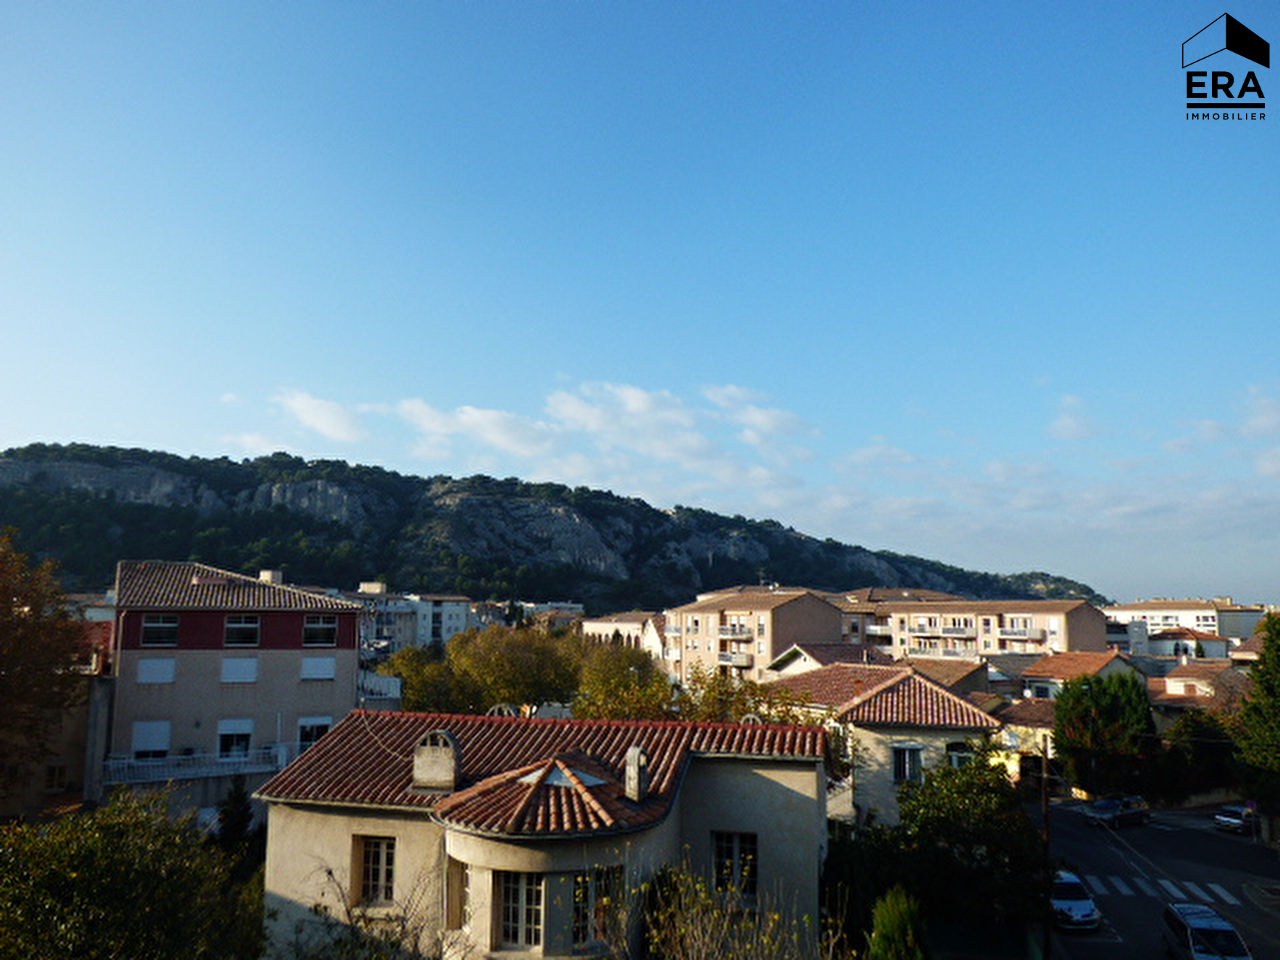 A vendre, Cavaillon, centre ville, appartement de 93 m²  avec parking privatif